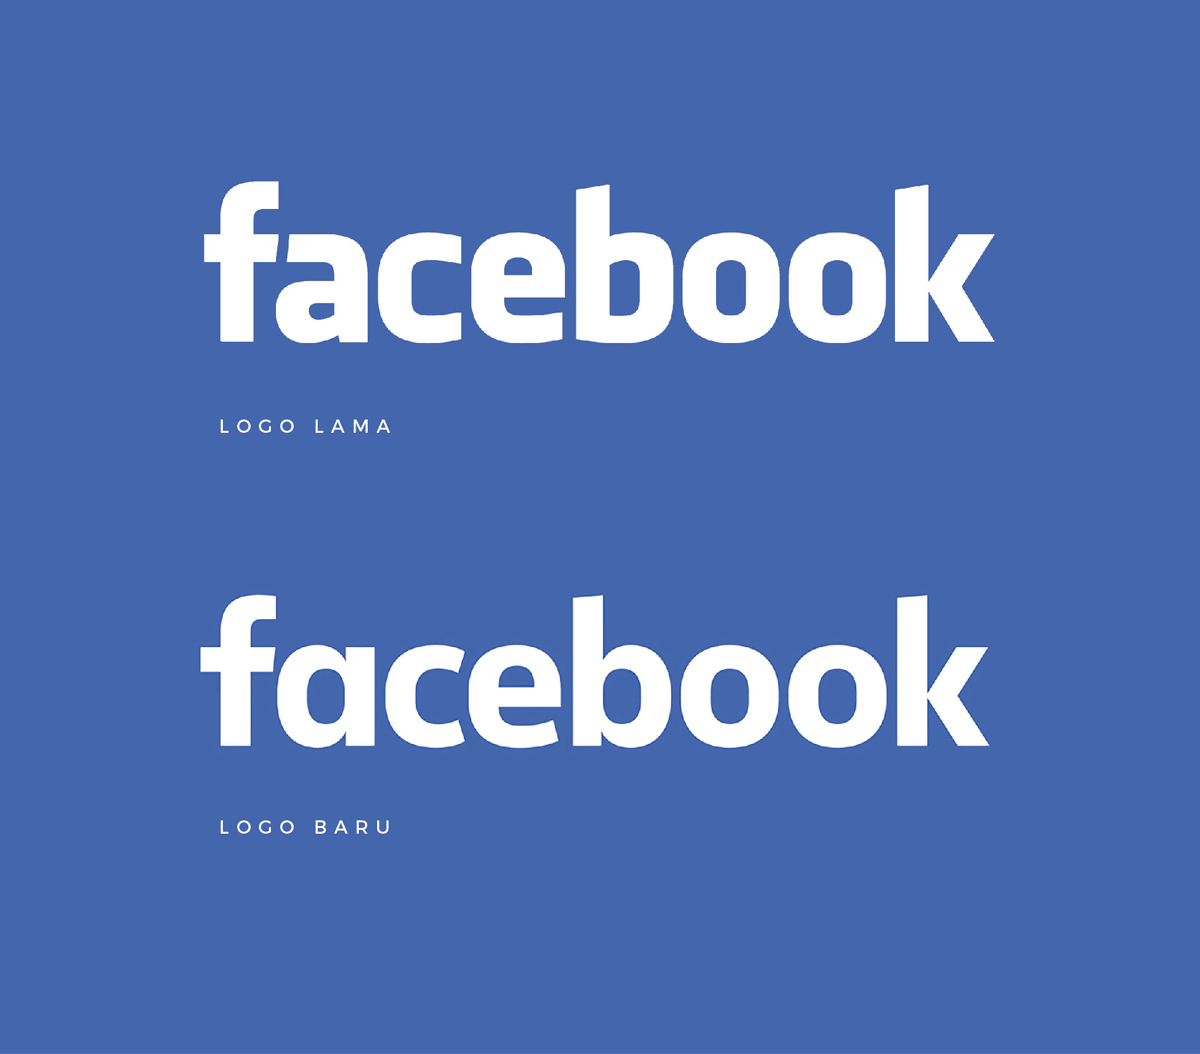 FB-Old-New-01